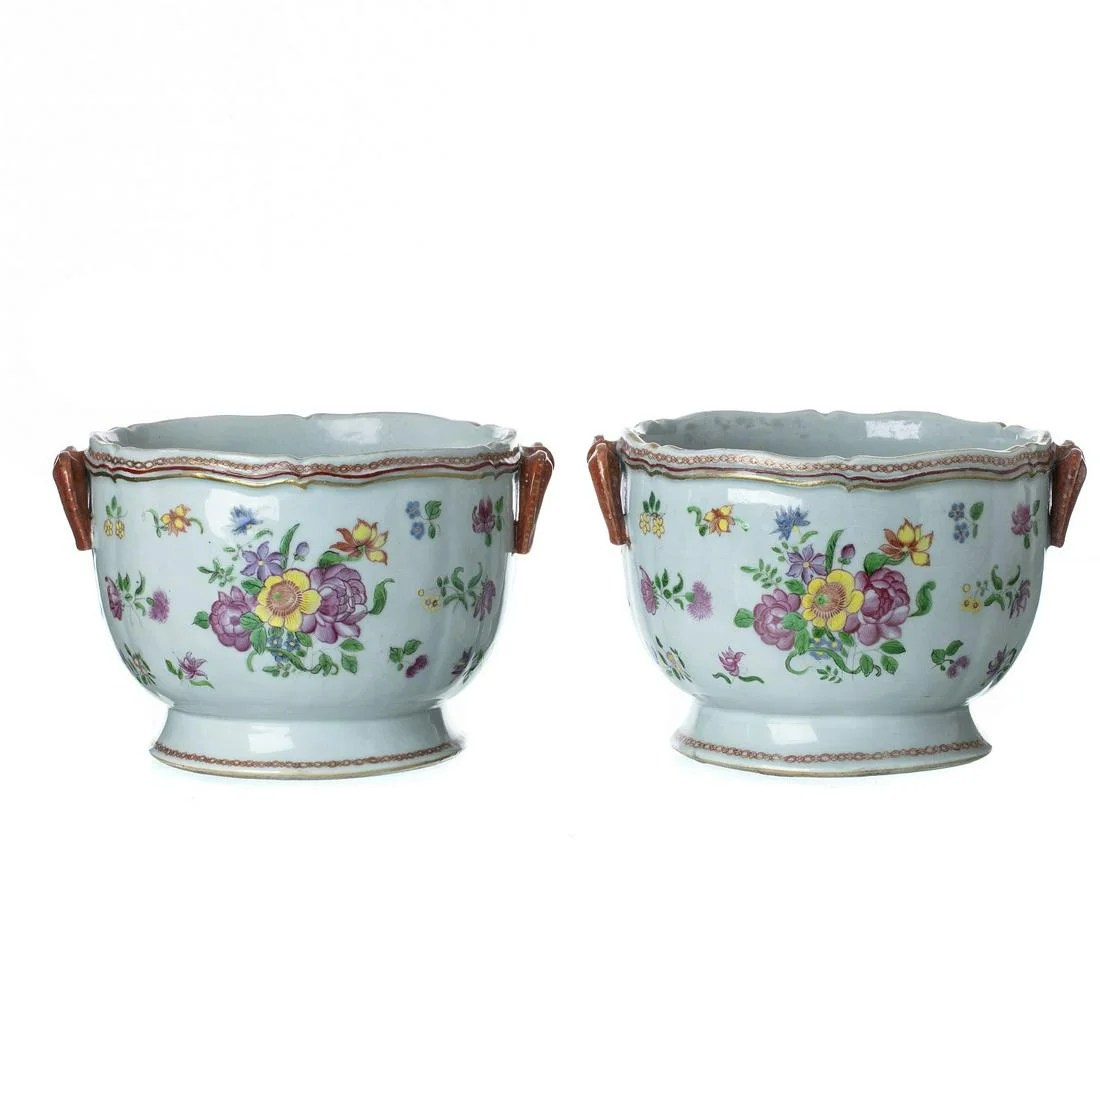 Pair of Chinese porcelain famille-rose wine coolers,